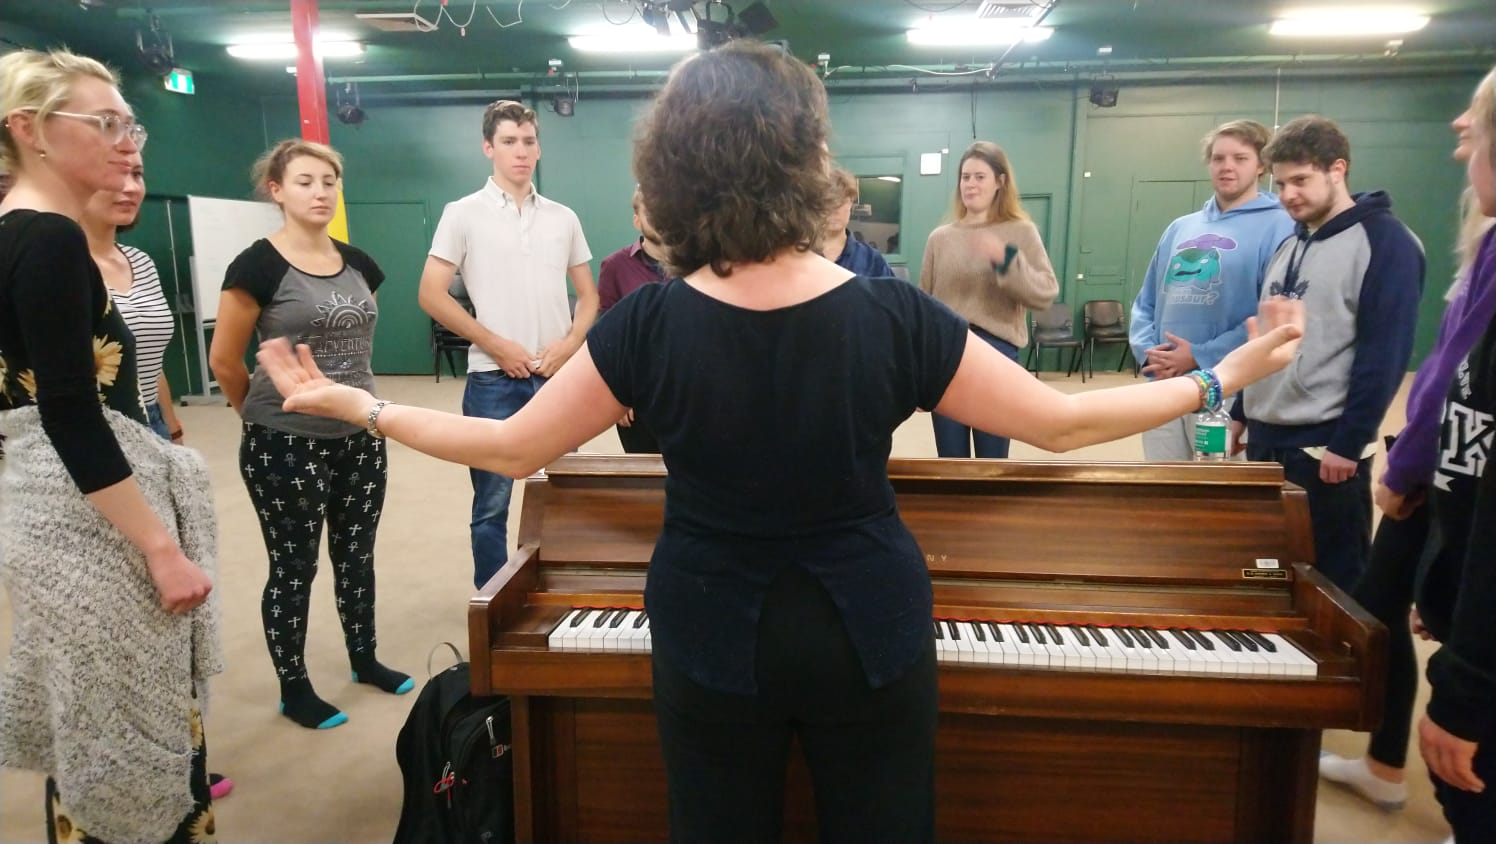 Stacey delivering a workshop for Charles Sturt University Performing Arts students